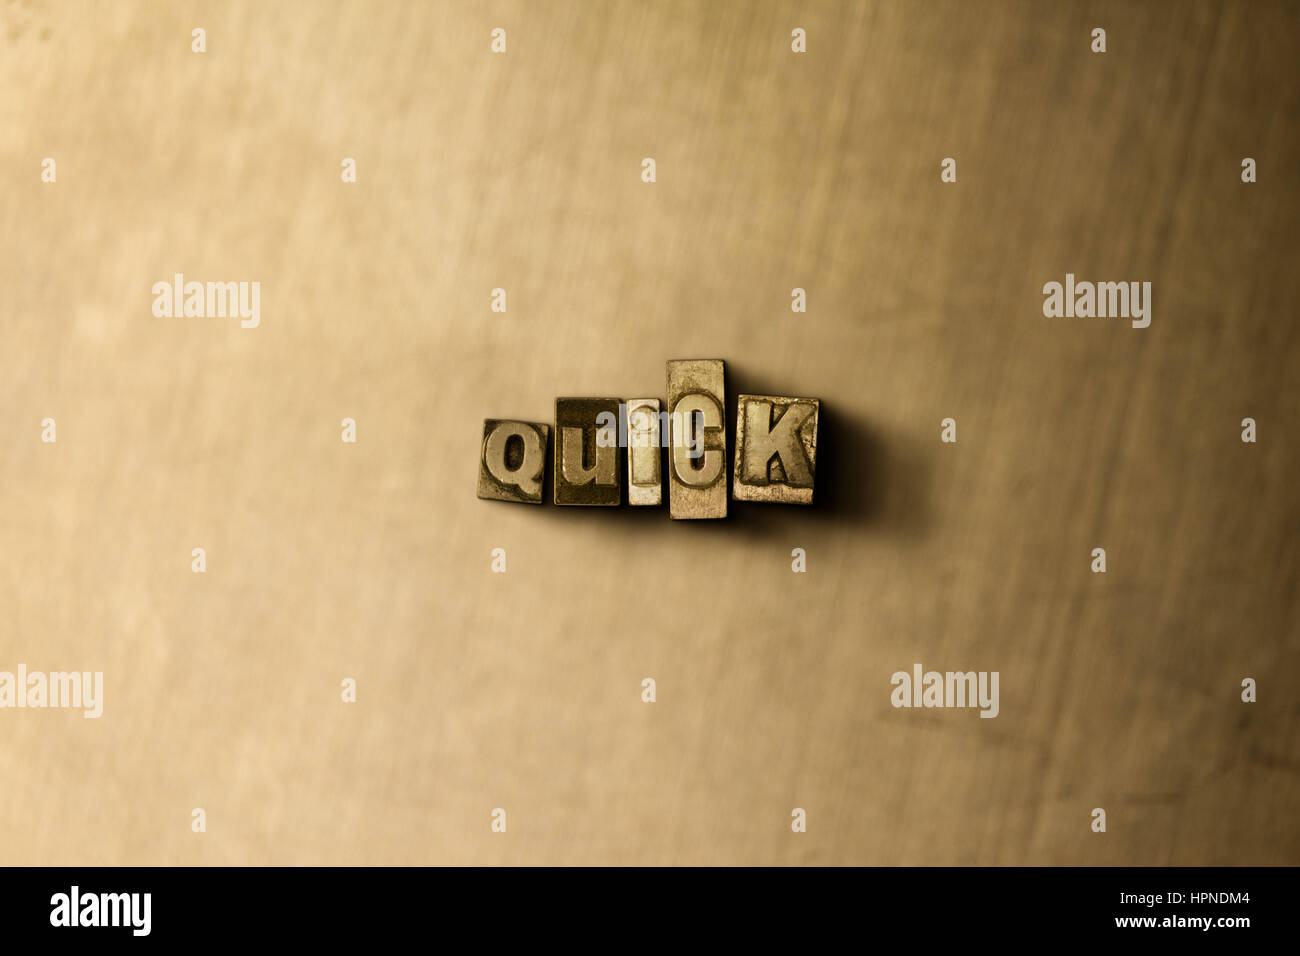 QUICK - close-up of grungy vintage typeset word on metal backdrop. Royalty free stock illustration.  Can be used - Stock Image